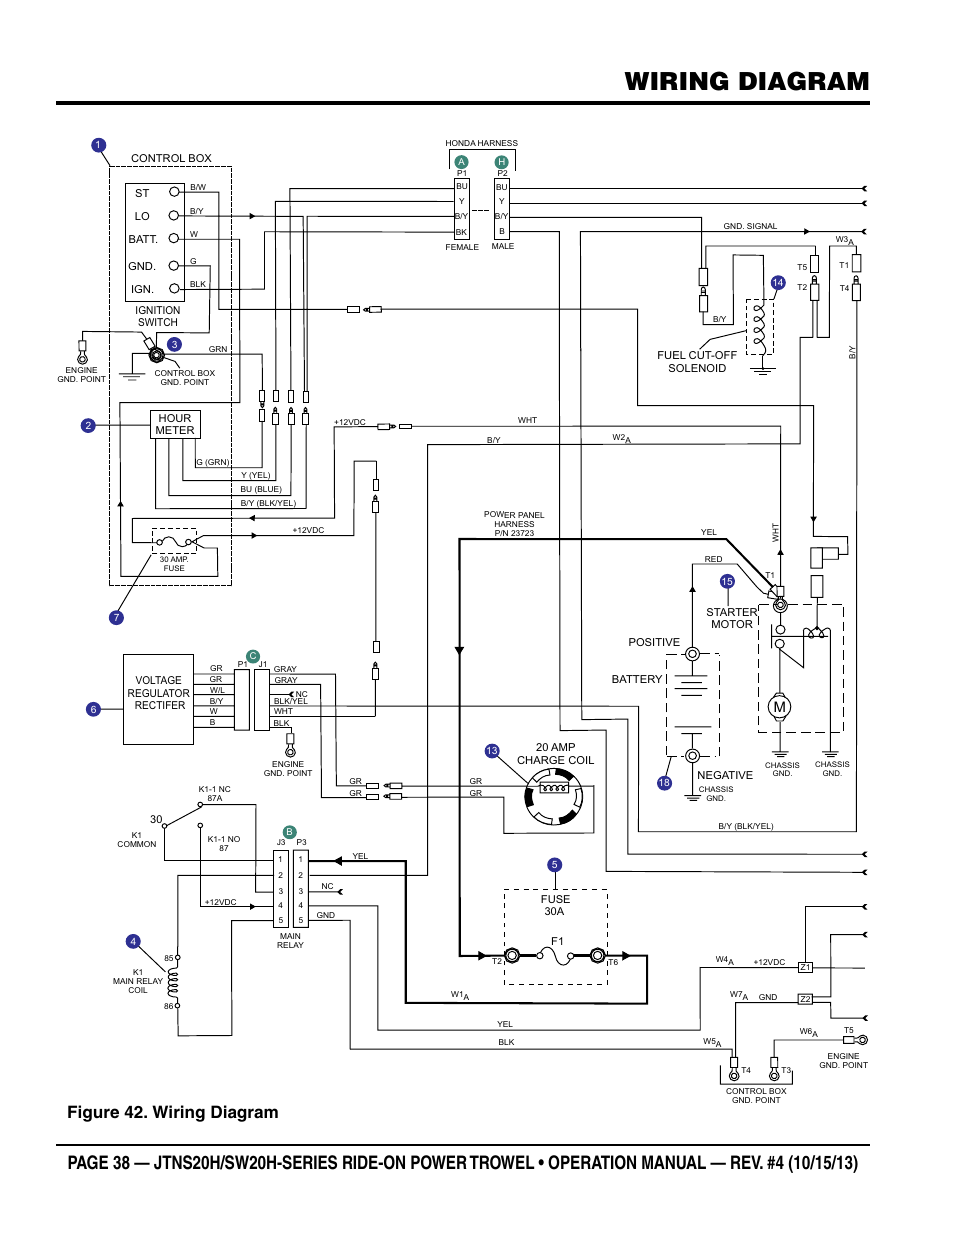 [DIAGRAM] Honda Grazia User Wiring Diagram FULL Version HD